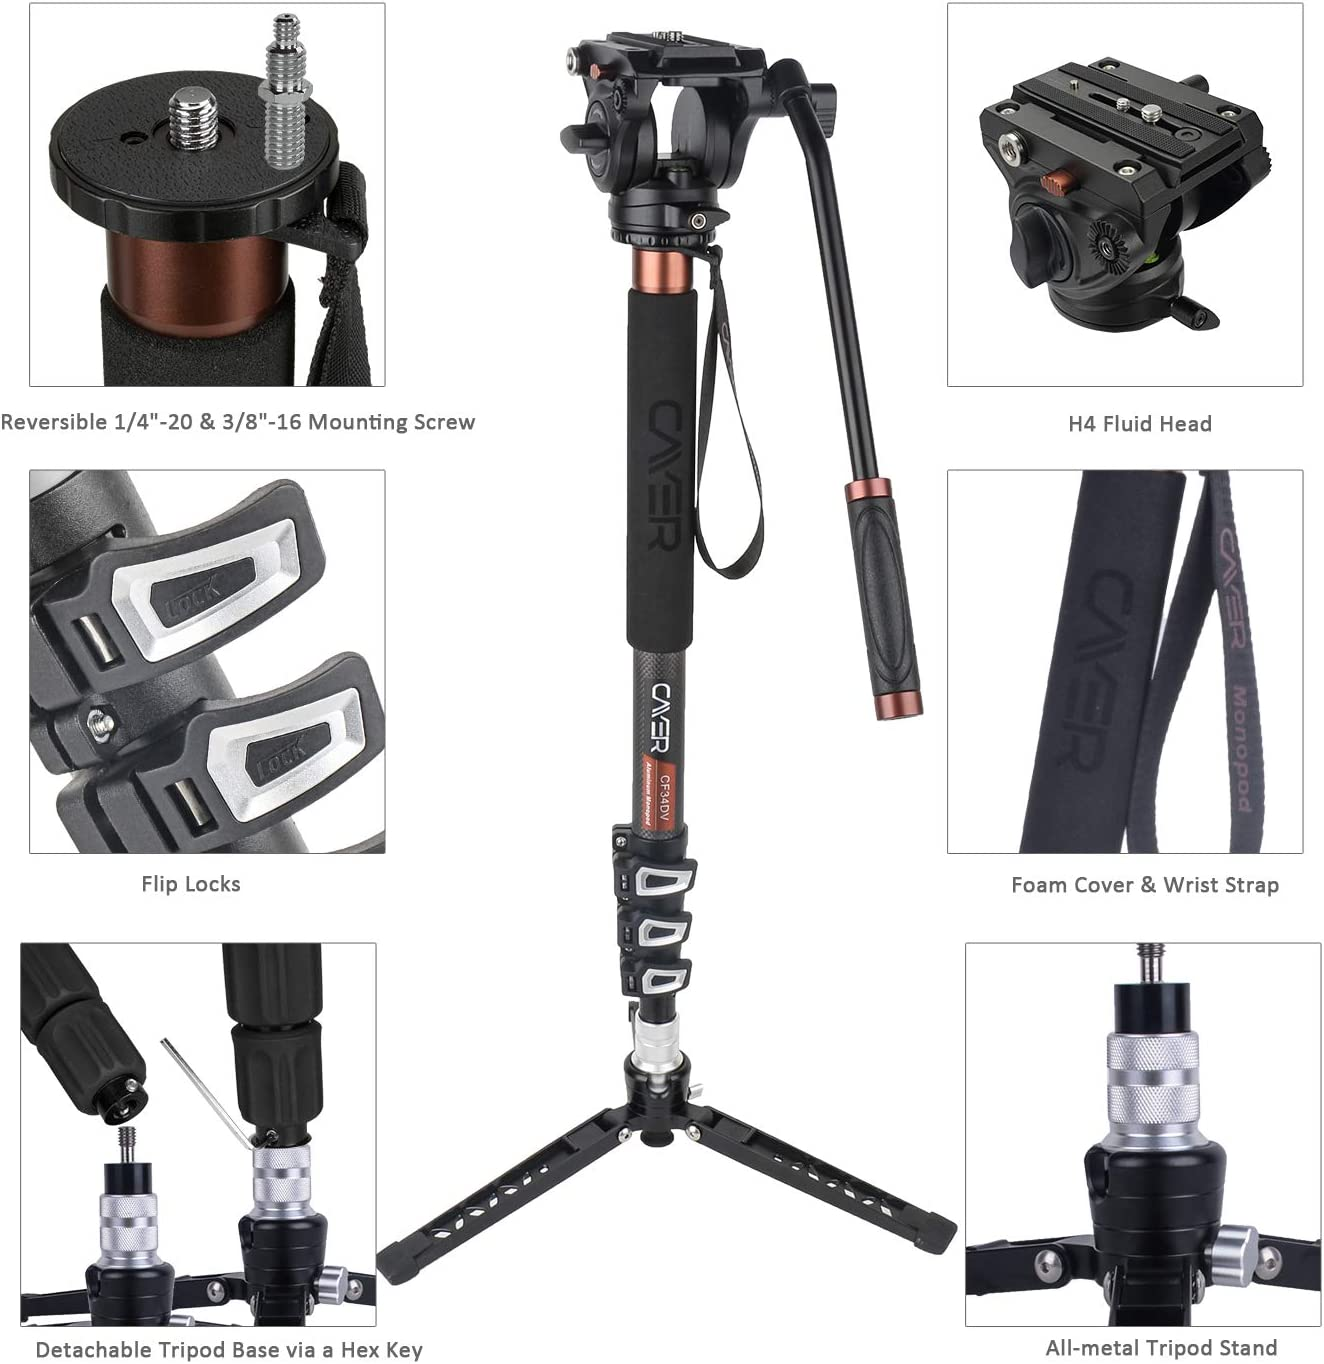 71 inch Professional Telescopic Video Monopods with Video Fluid Head and Folding Support Base for DSLR Video Cameras Camcorders Cayer CF34 Carbon Fiber Camer Monopod Kit Plus 1 Extra Sliding Plate